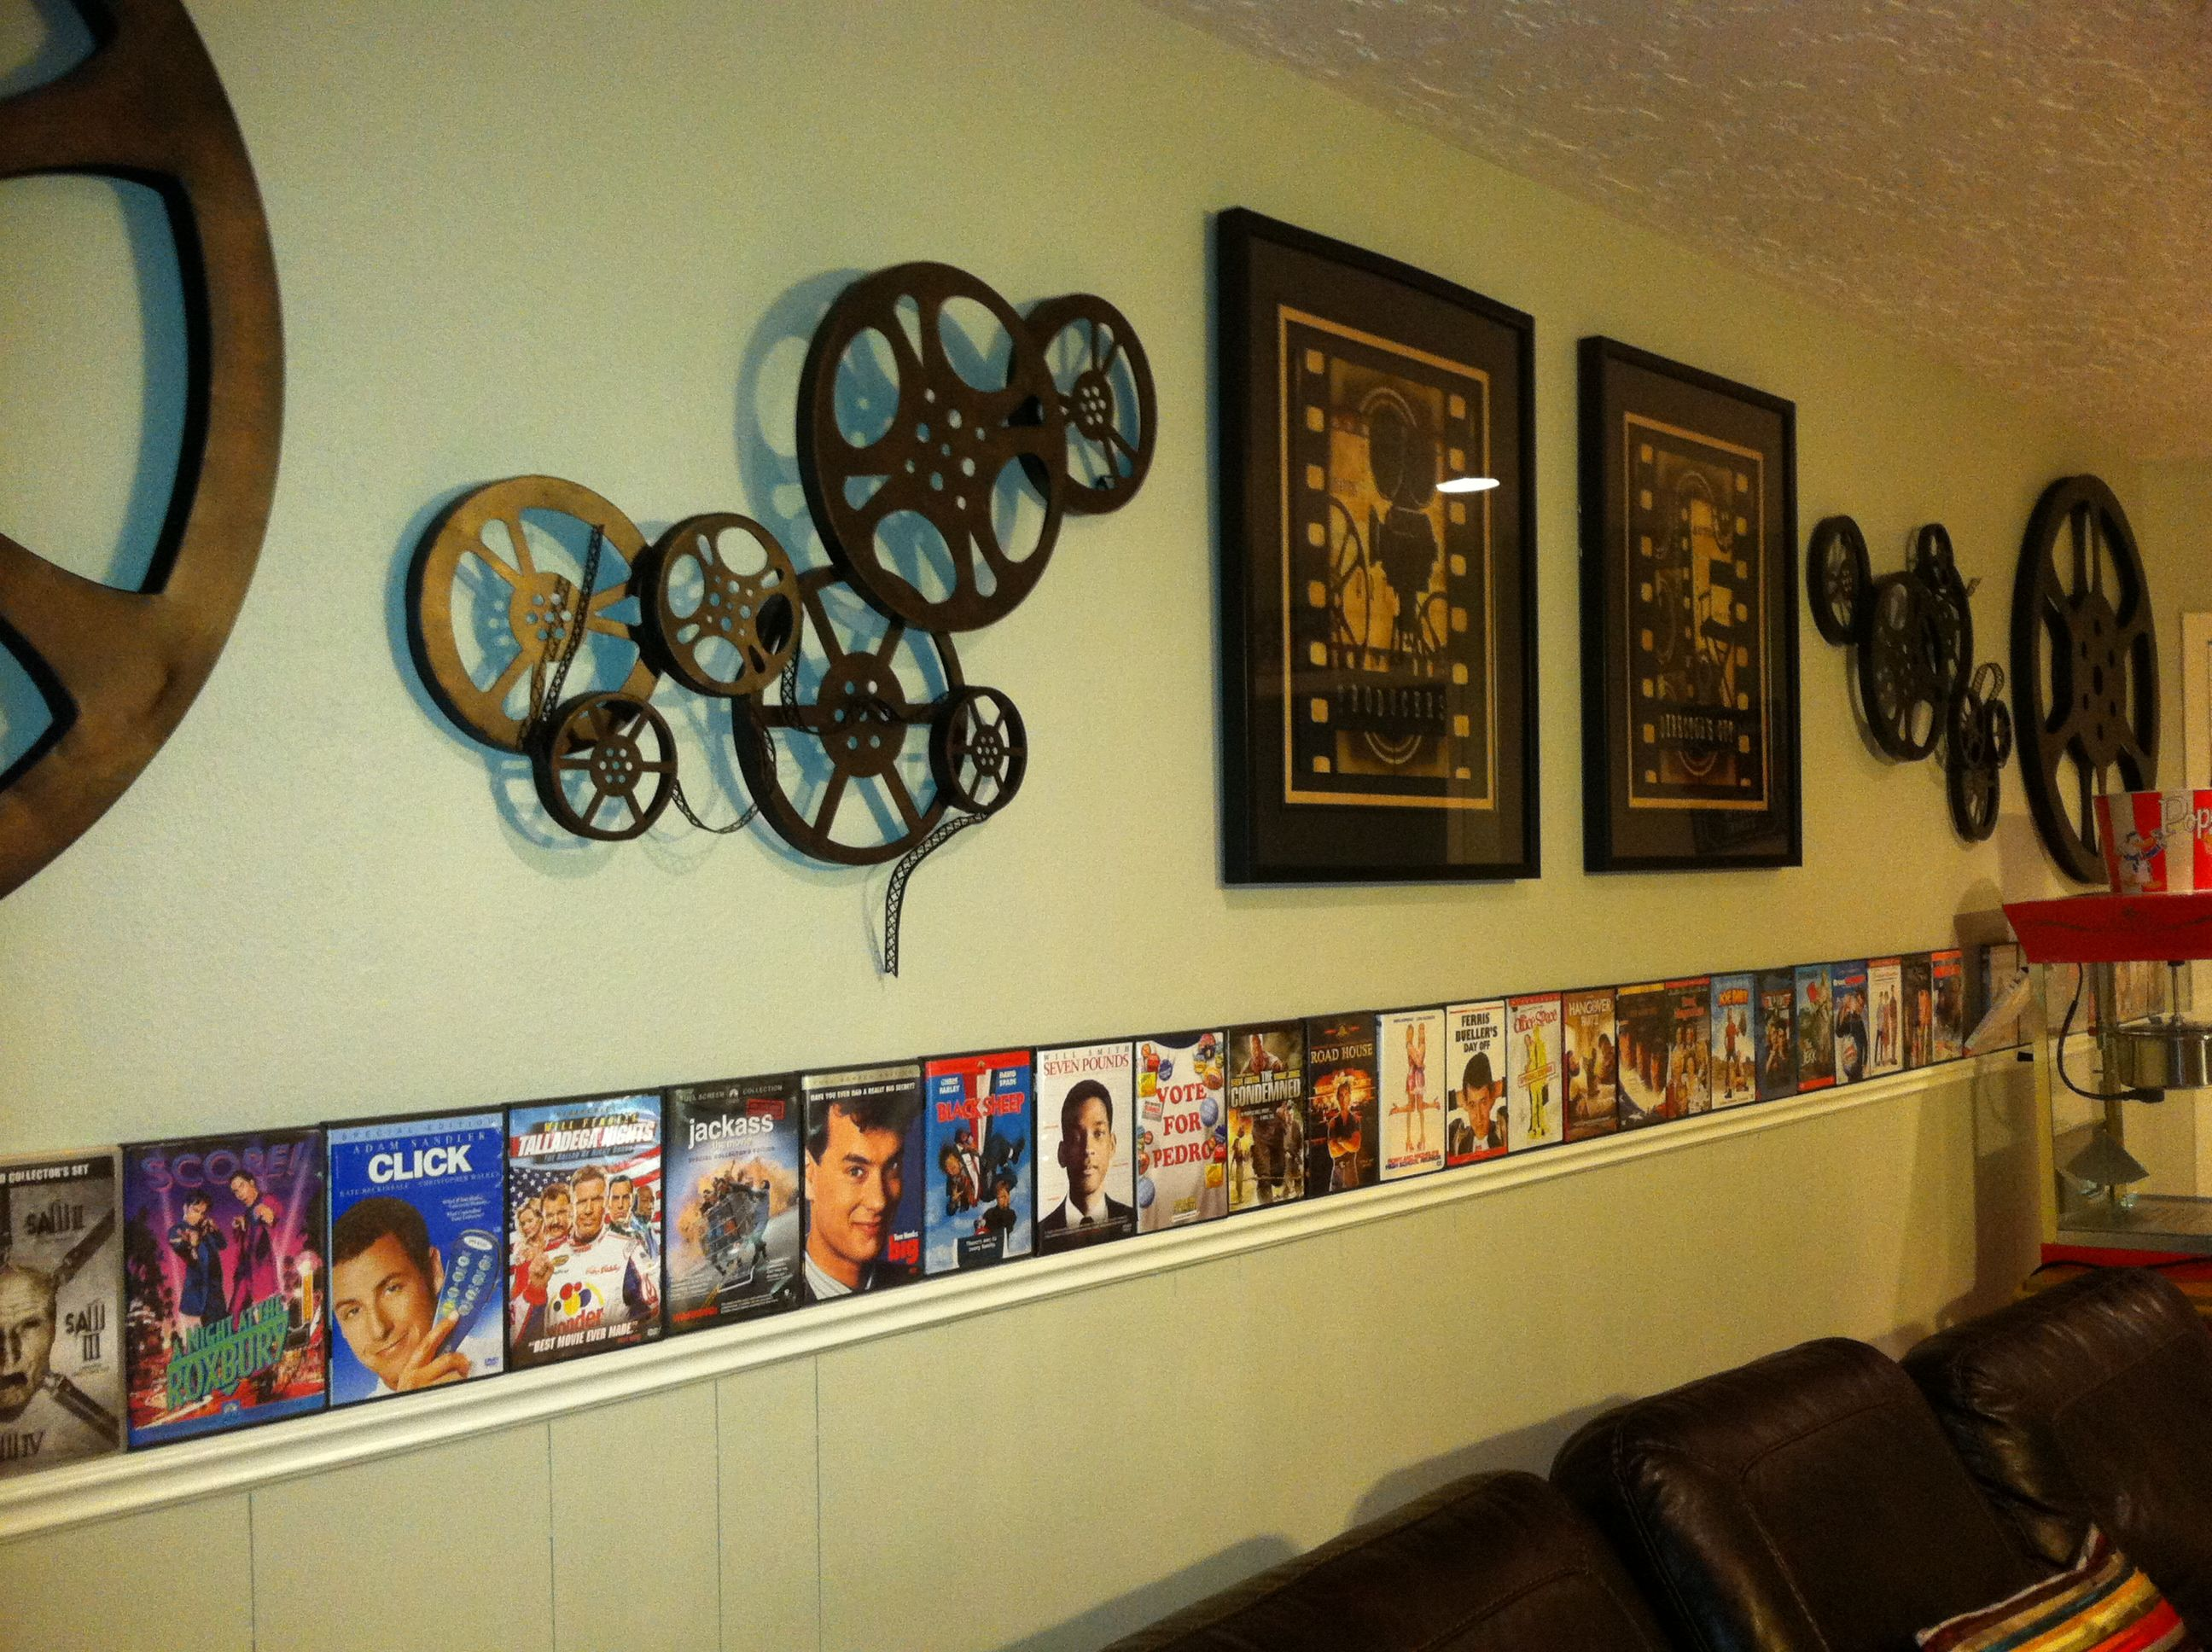 Theater Room Ideas. Take empty DVD boxes and display along the wall ...